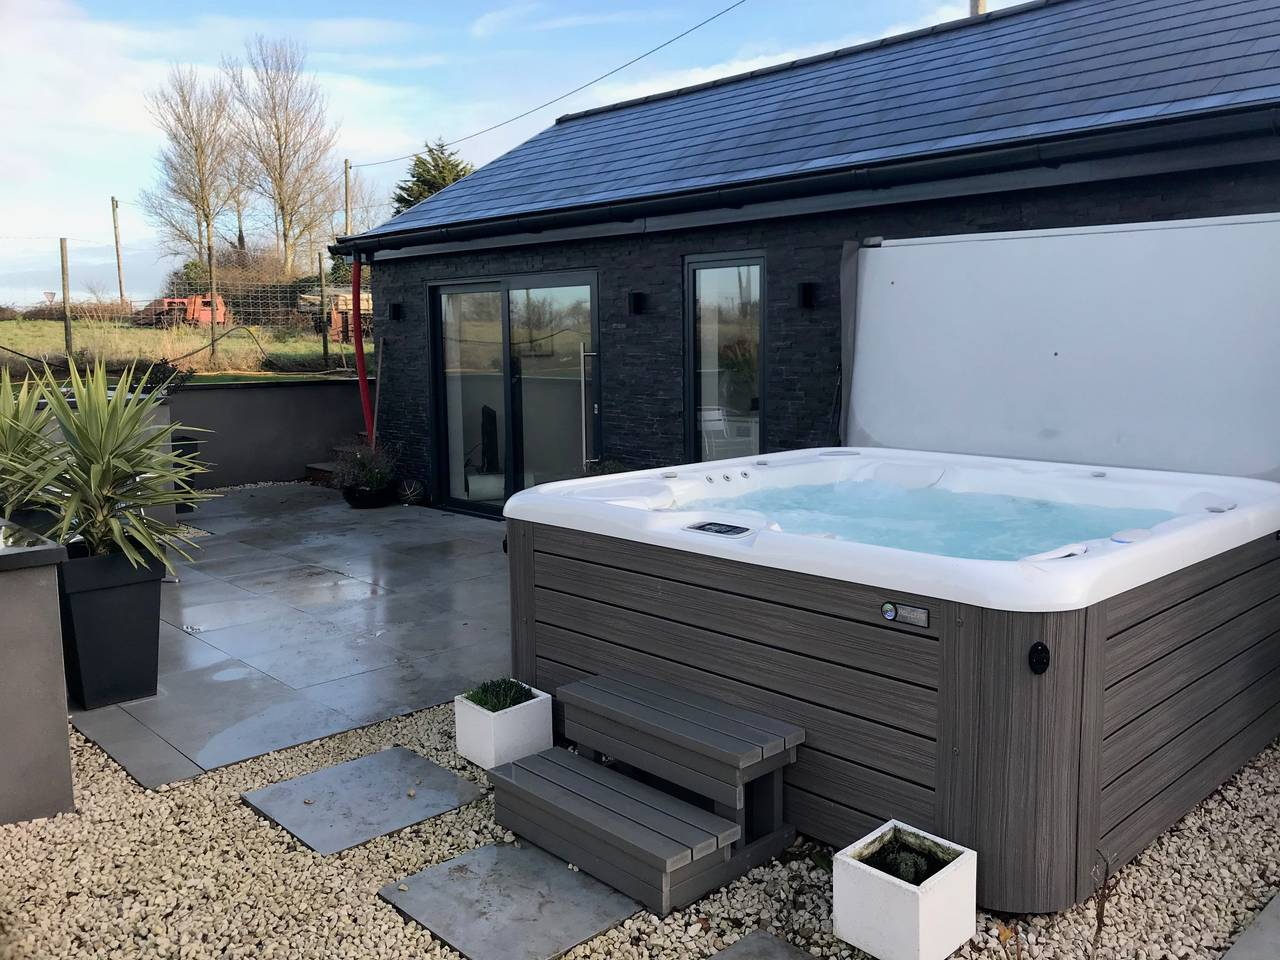 Hot Tub Holidays in the Broads National Park